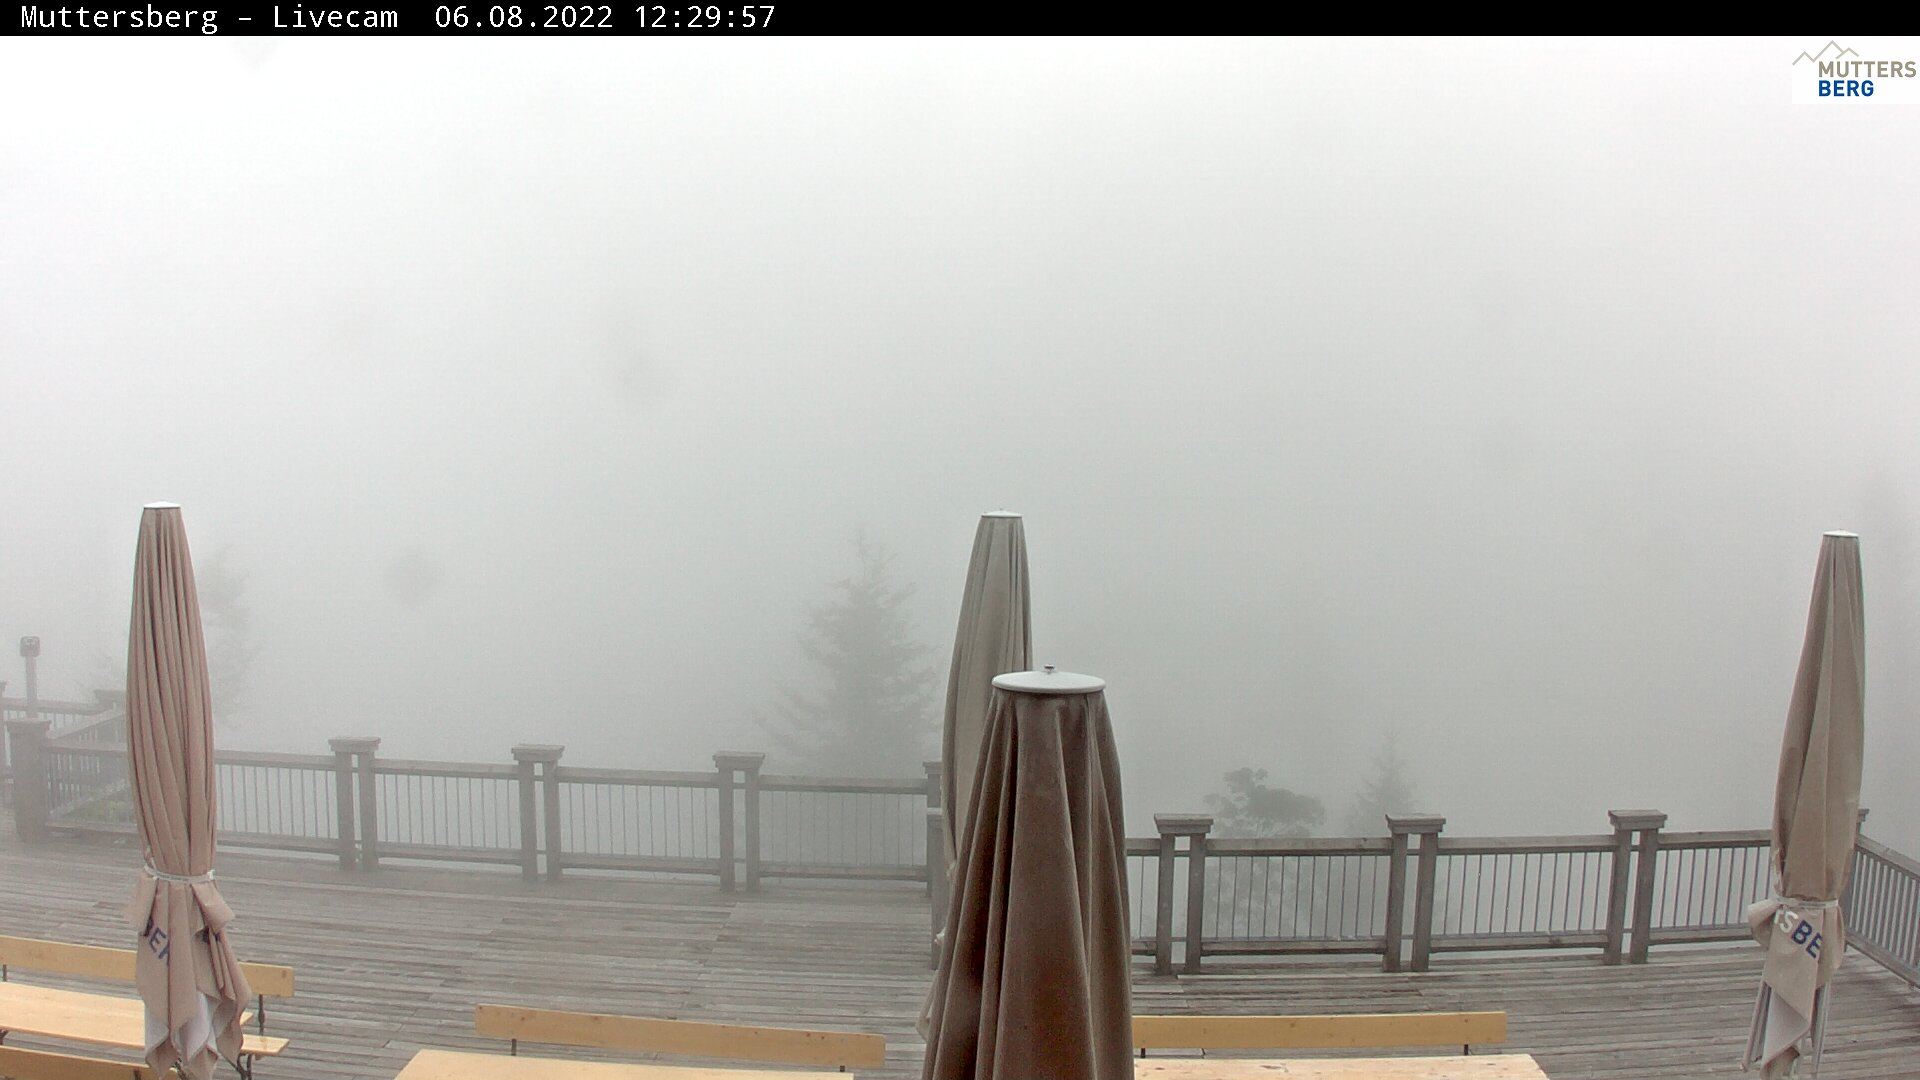 https://www.muttersberg.at/Webcam/Muttersberg_Webcam